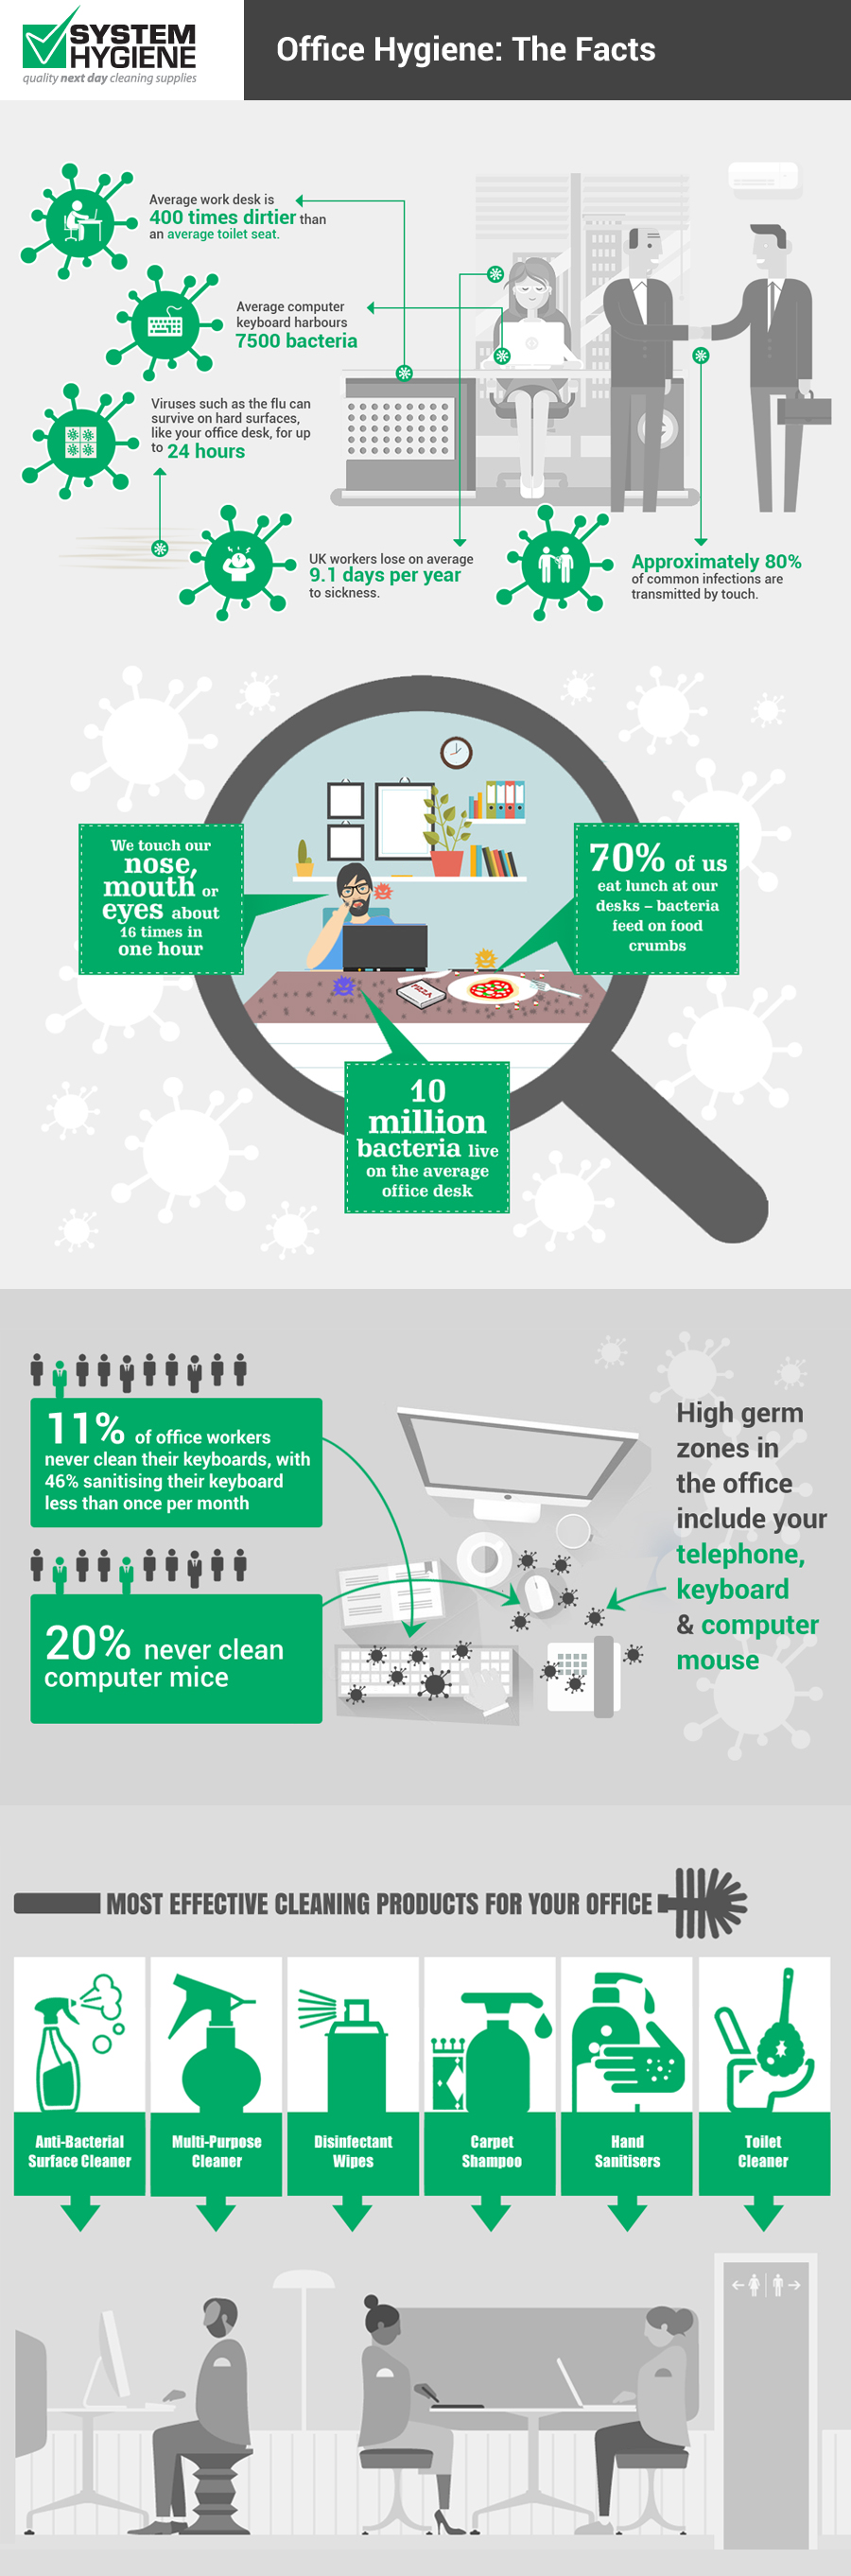 Office Hygiene: The Facts